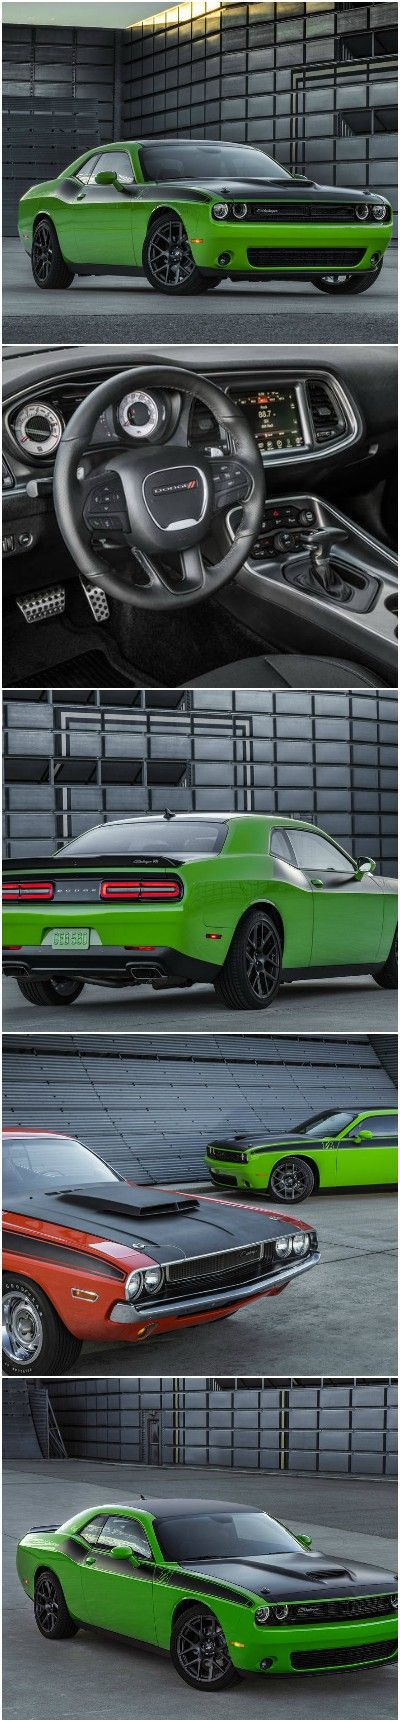 This Challenger makes no practical sense. It weighs 4,250 pounds and ...